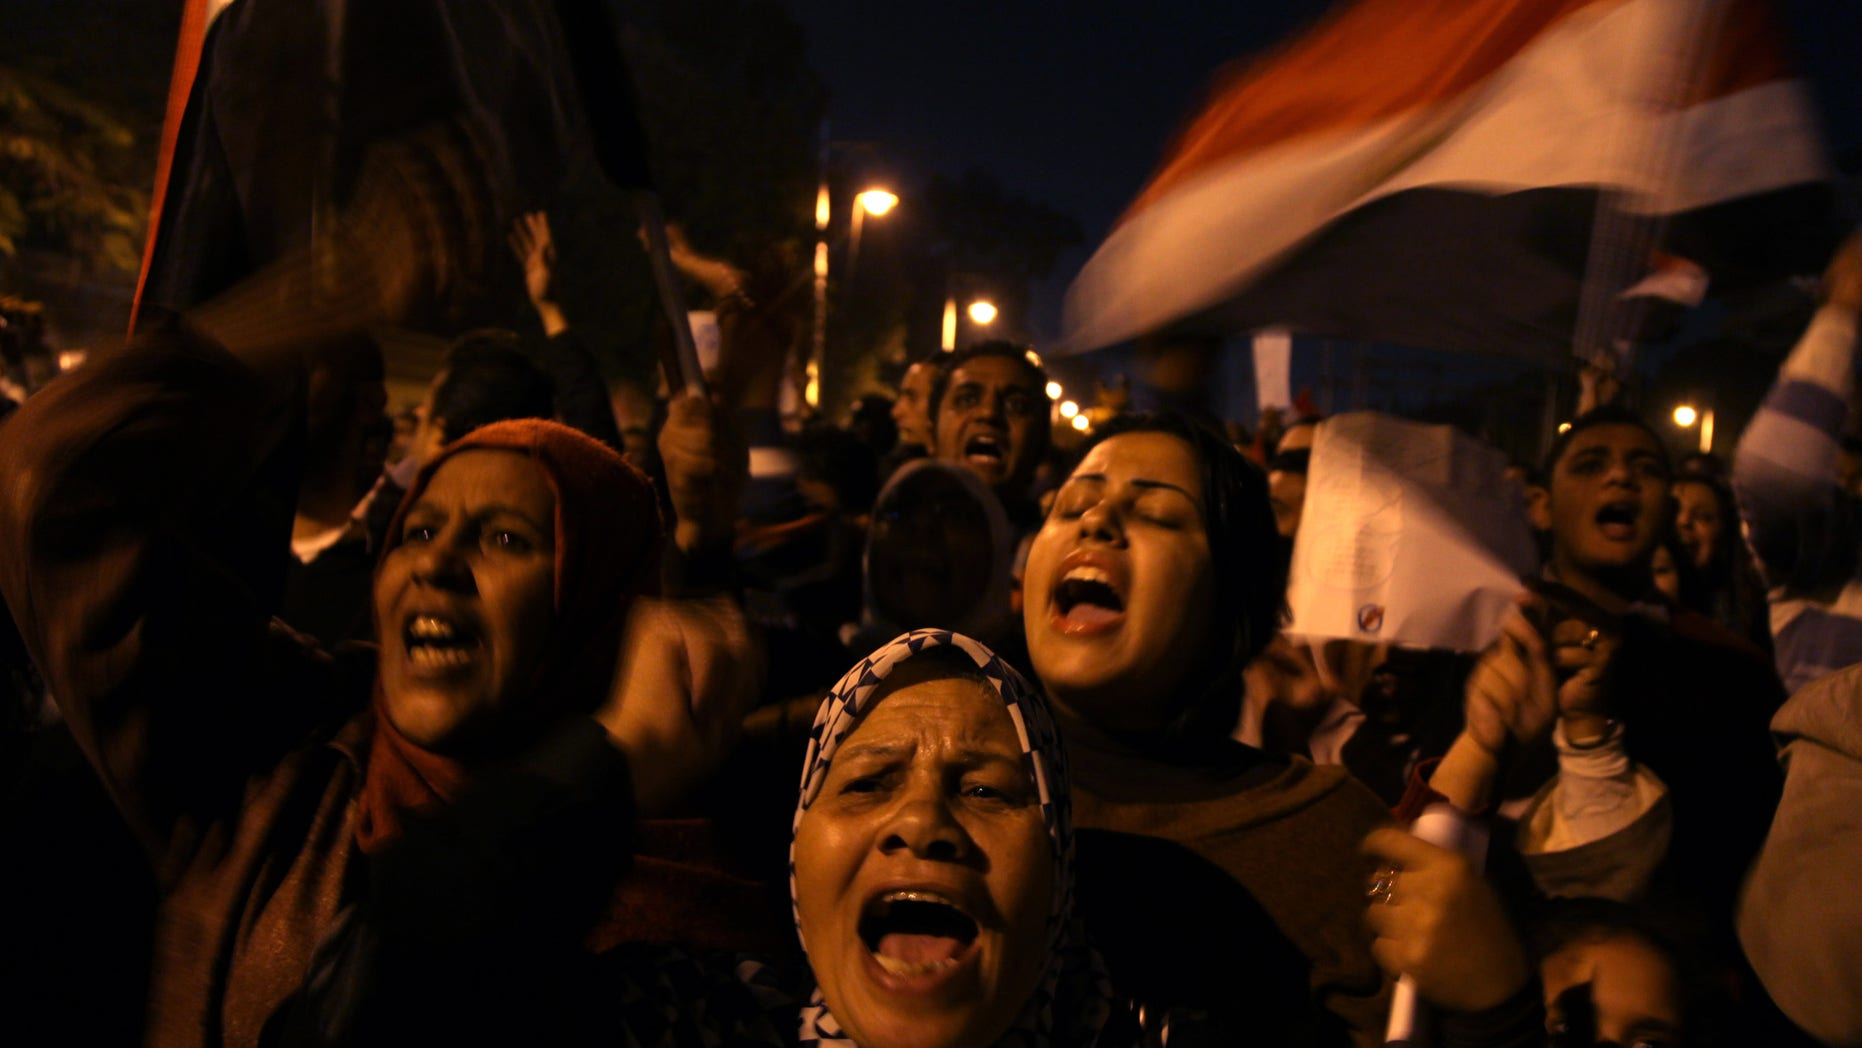 Dec, 18, 2012: Egyptian protesters opposing president Mohammed Morsi chant slogans during a protest against President Mohammed Morsi, in front of the presidential palace  in Cairo, Egypt.